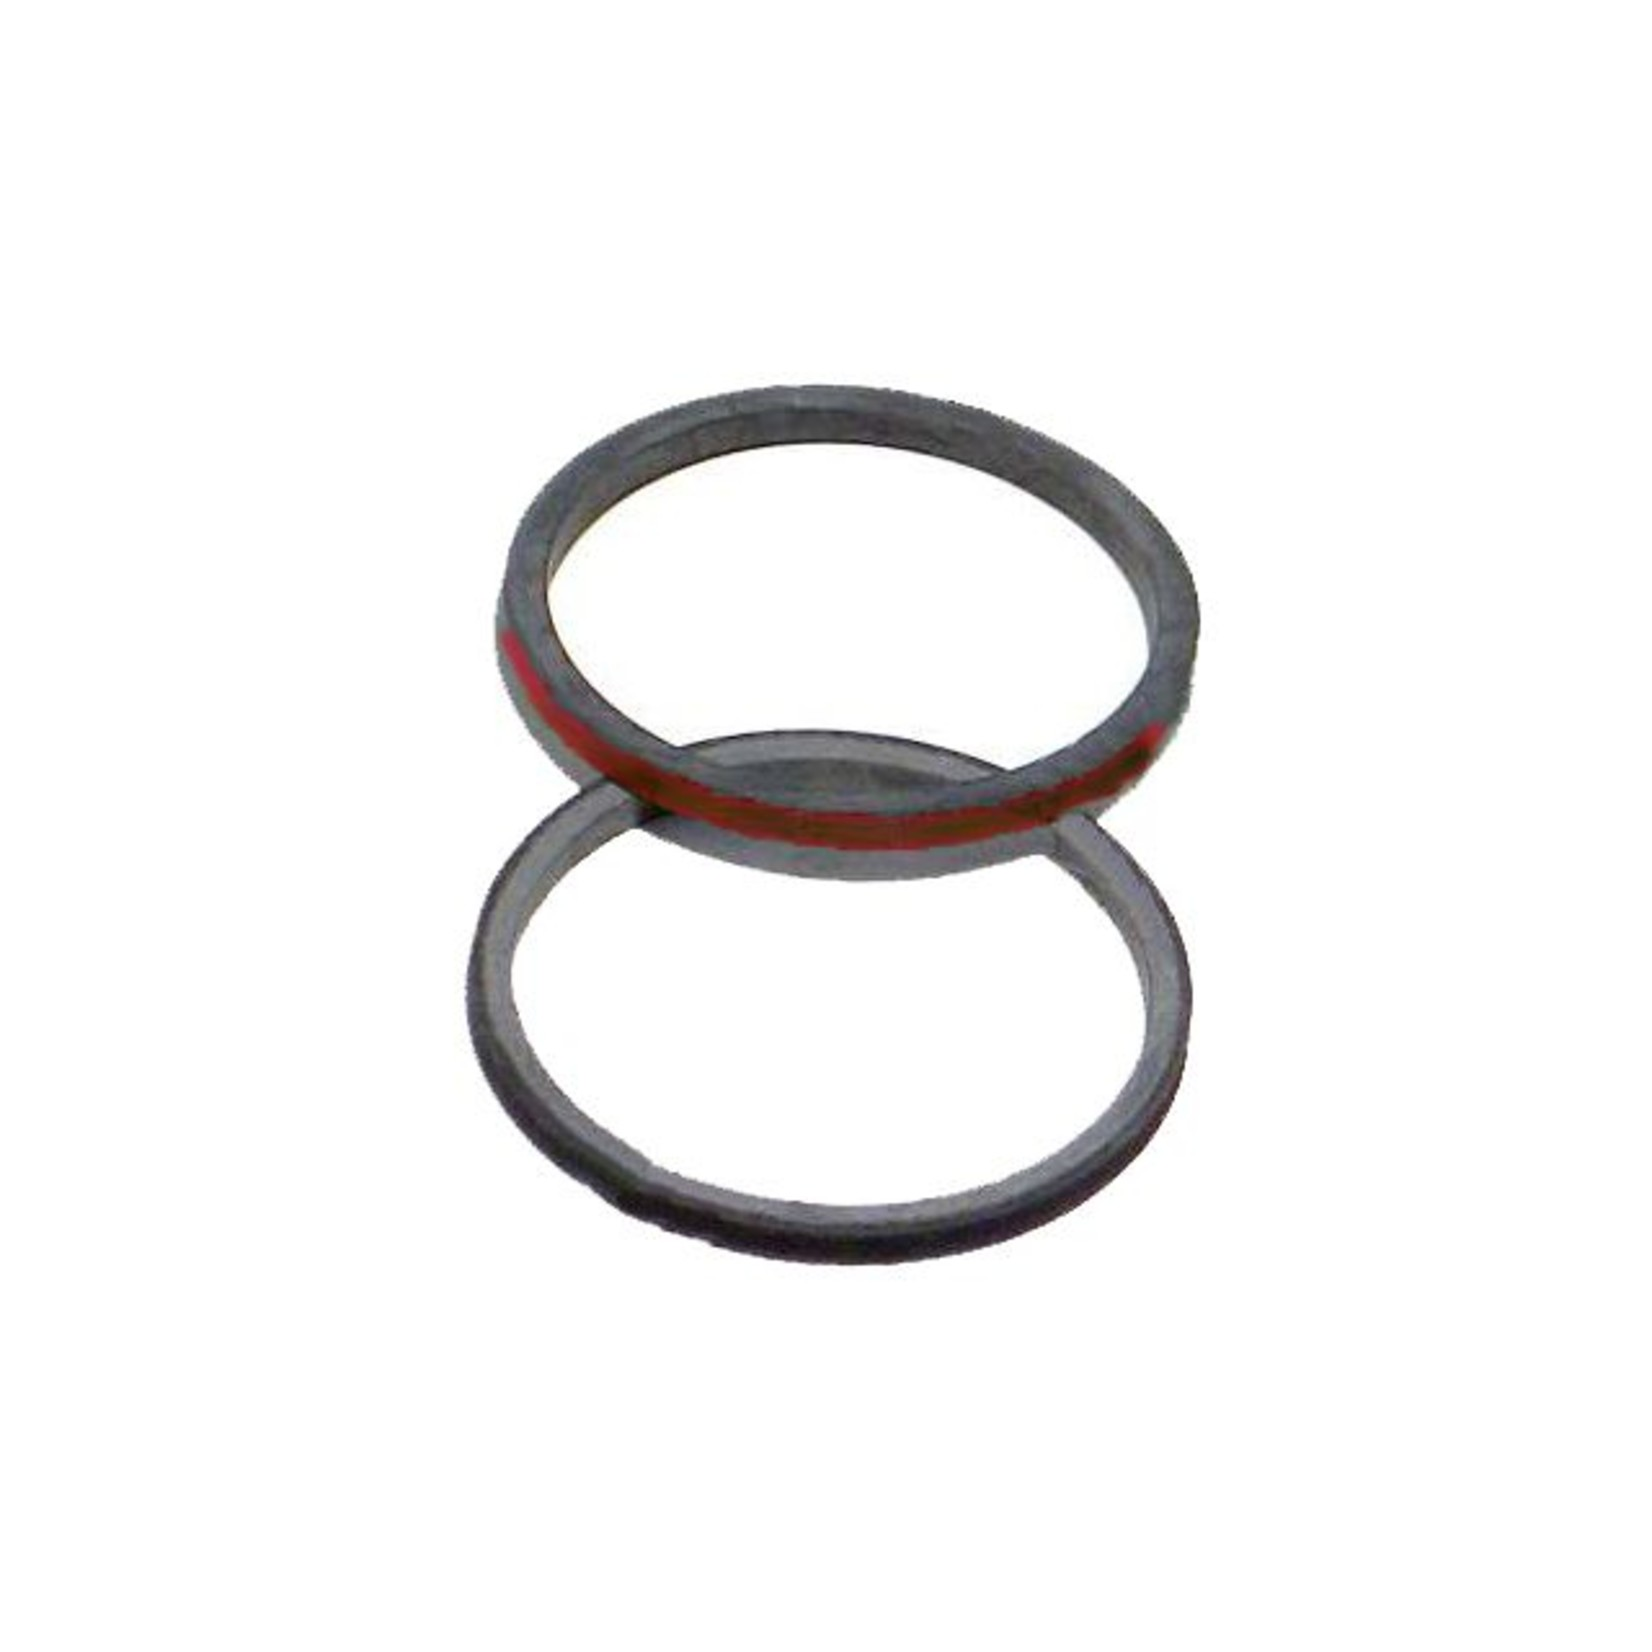 Sealing ring sphere square LHS Nr Org: D43390